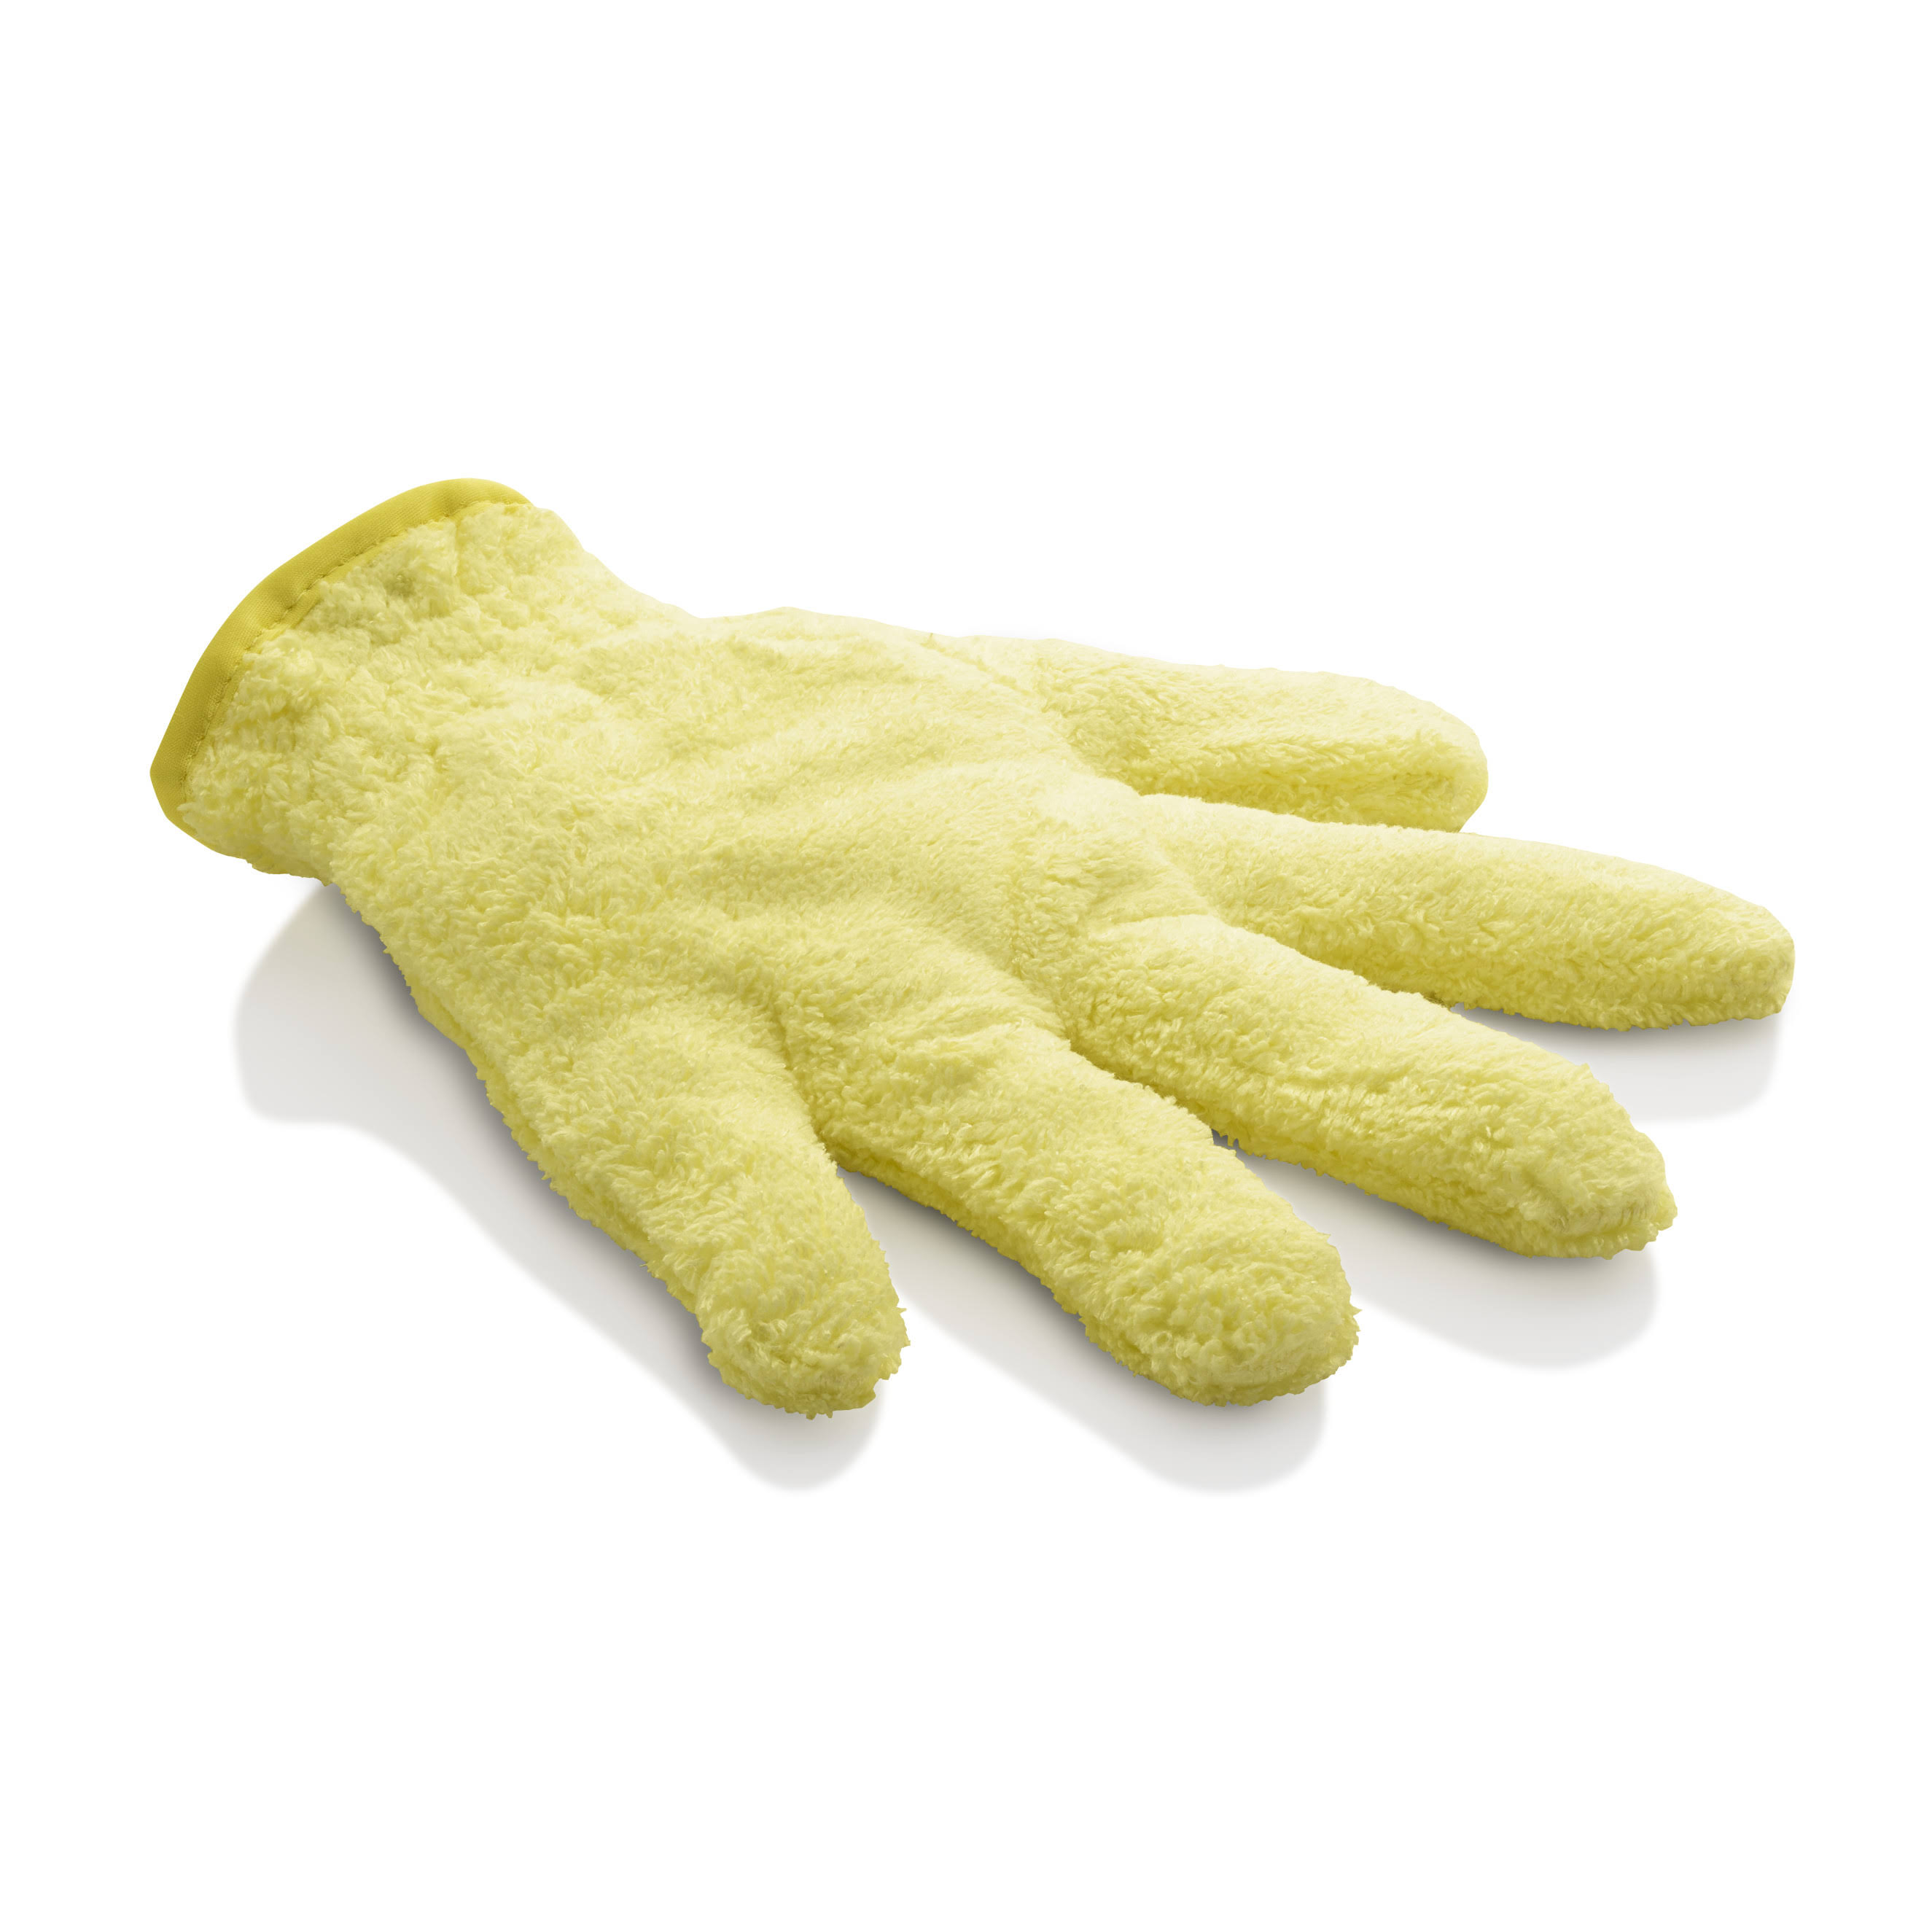 E Cloth High Performance Dusting and Cleaning Glove - Yellow